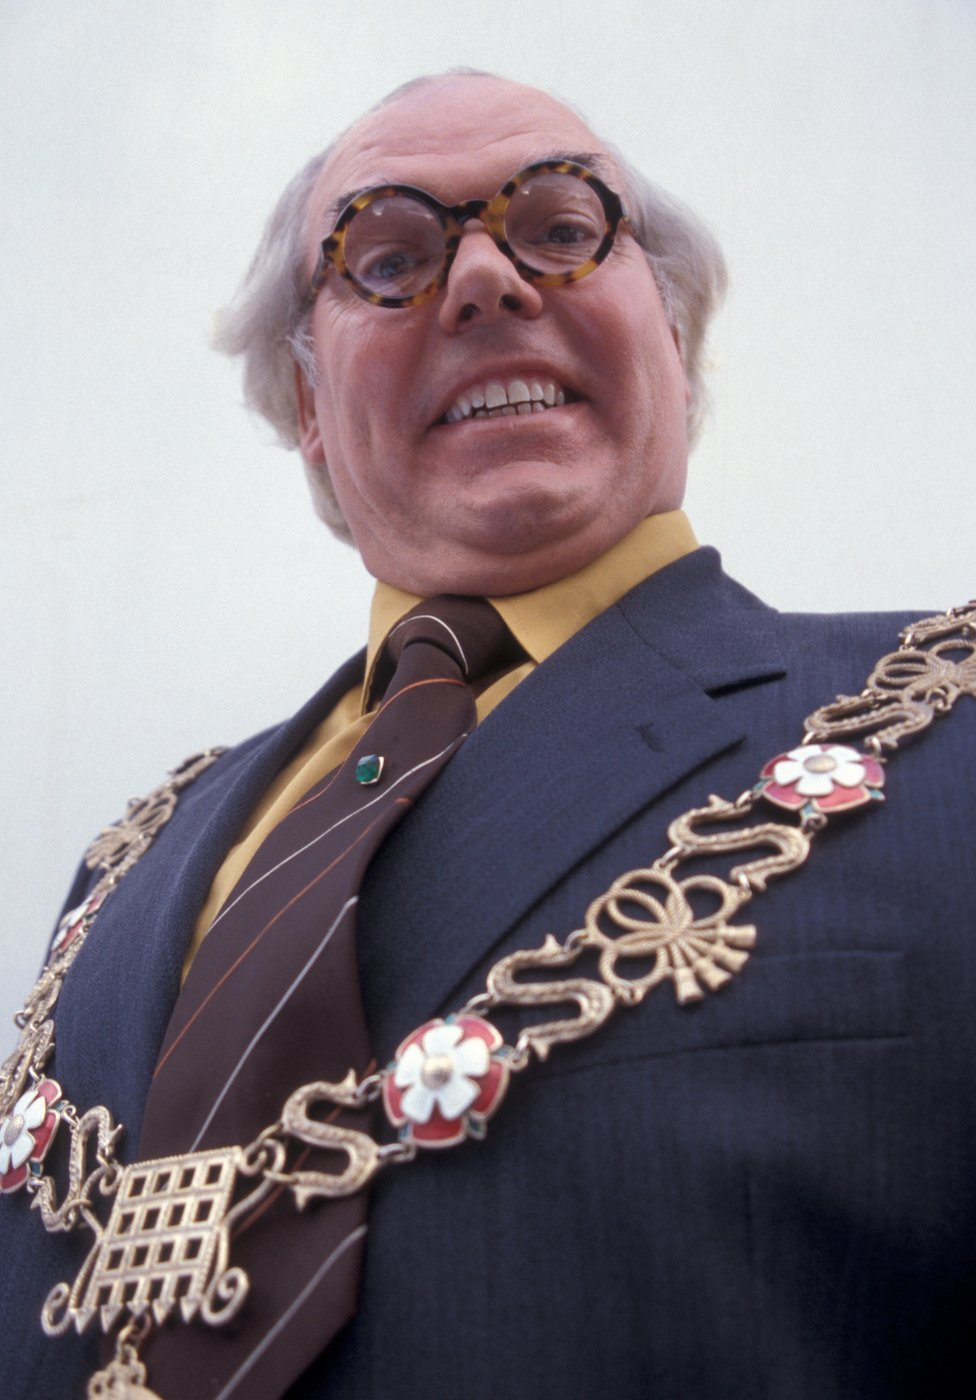 Roy Chubby Brown in the League of Gentleman